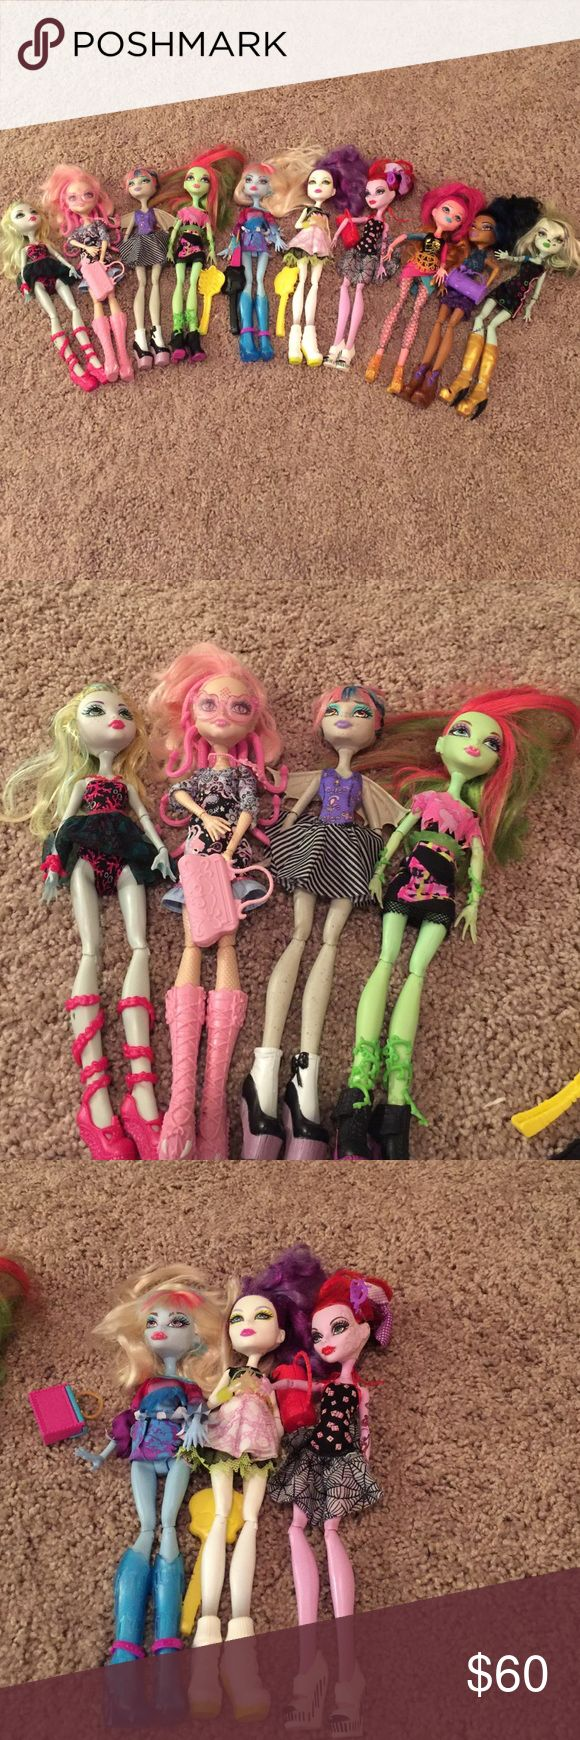 Monster High Dolls x 10 All 10 Monster High Dolls for Sale only $60 for all of them!! WOWZERS will sell separately for $8.00 each please leave a comment if you have any questions!! monster high Accessories